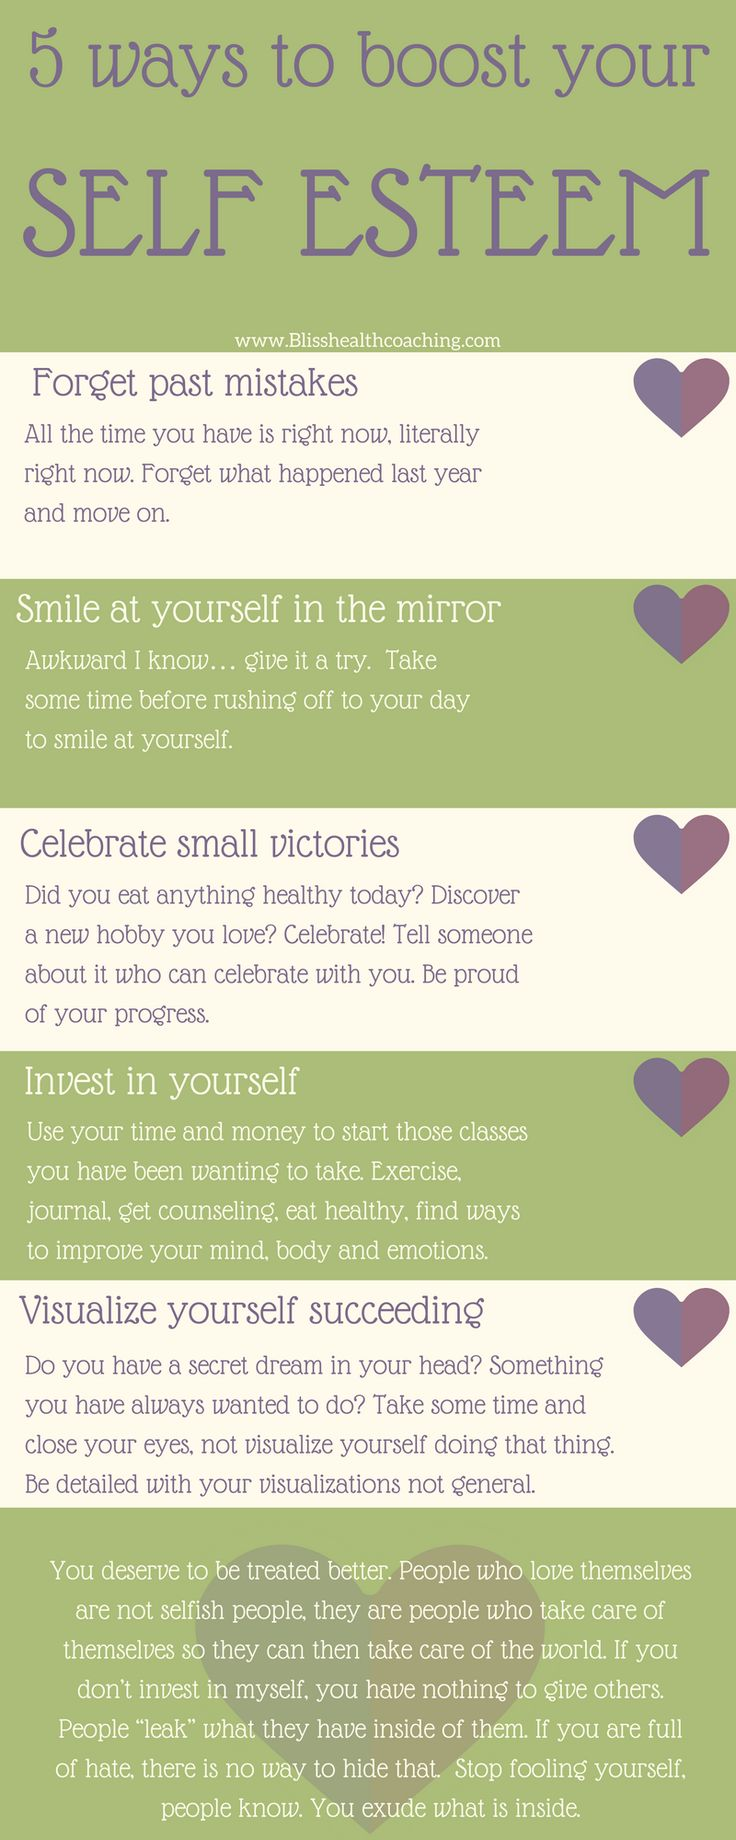 Learning to love yourself is the first step in getting healthy!